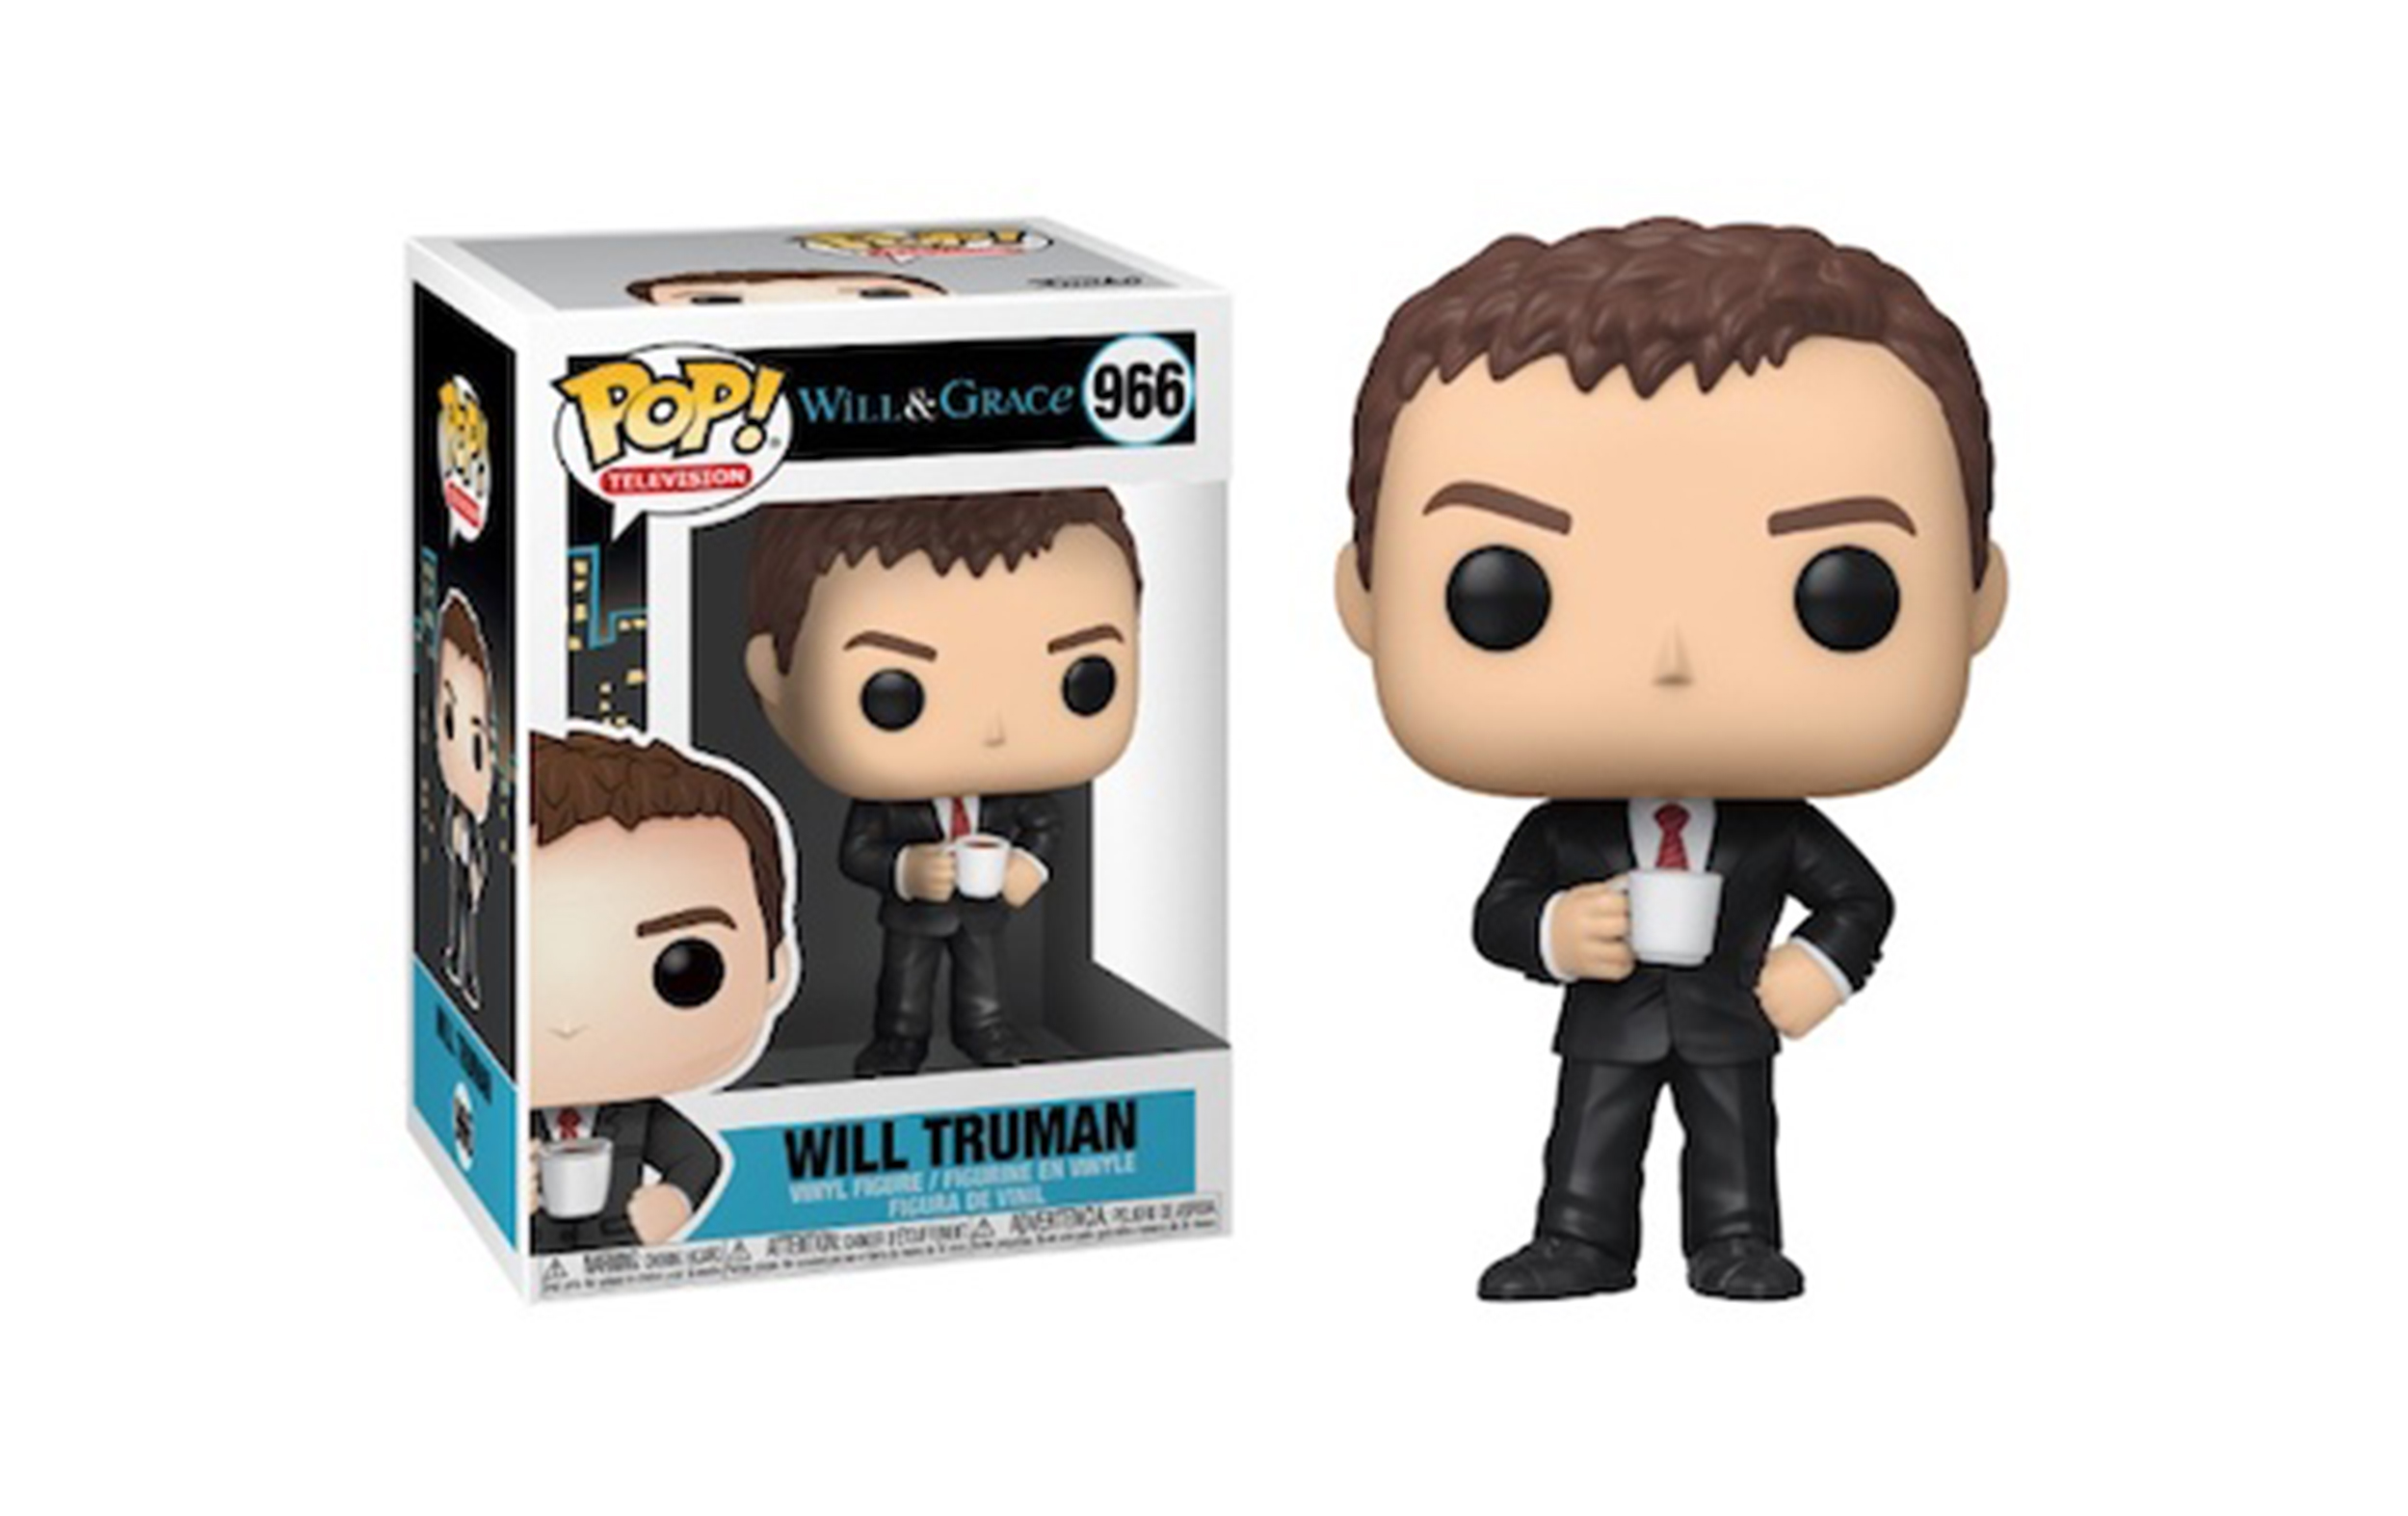 Will and Grace Will Truman 966 Funko POP Vinyl Figure